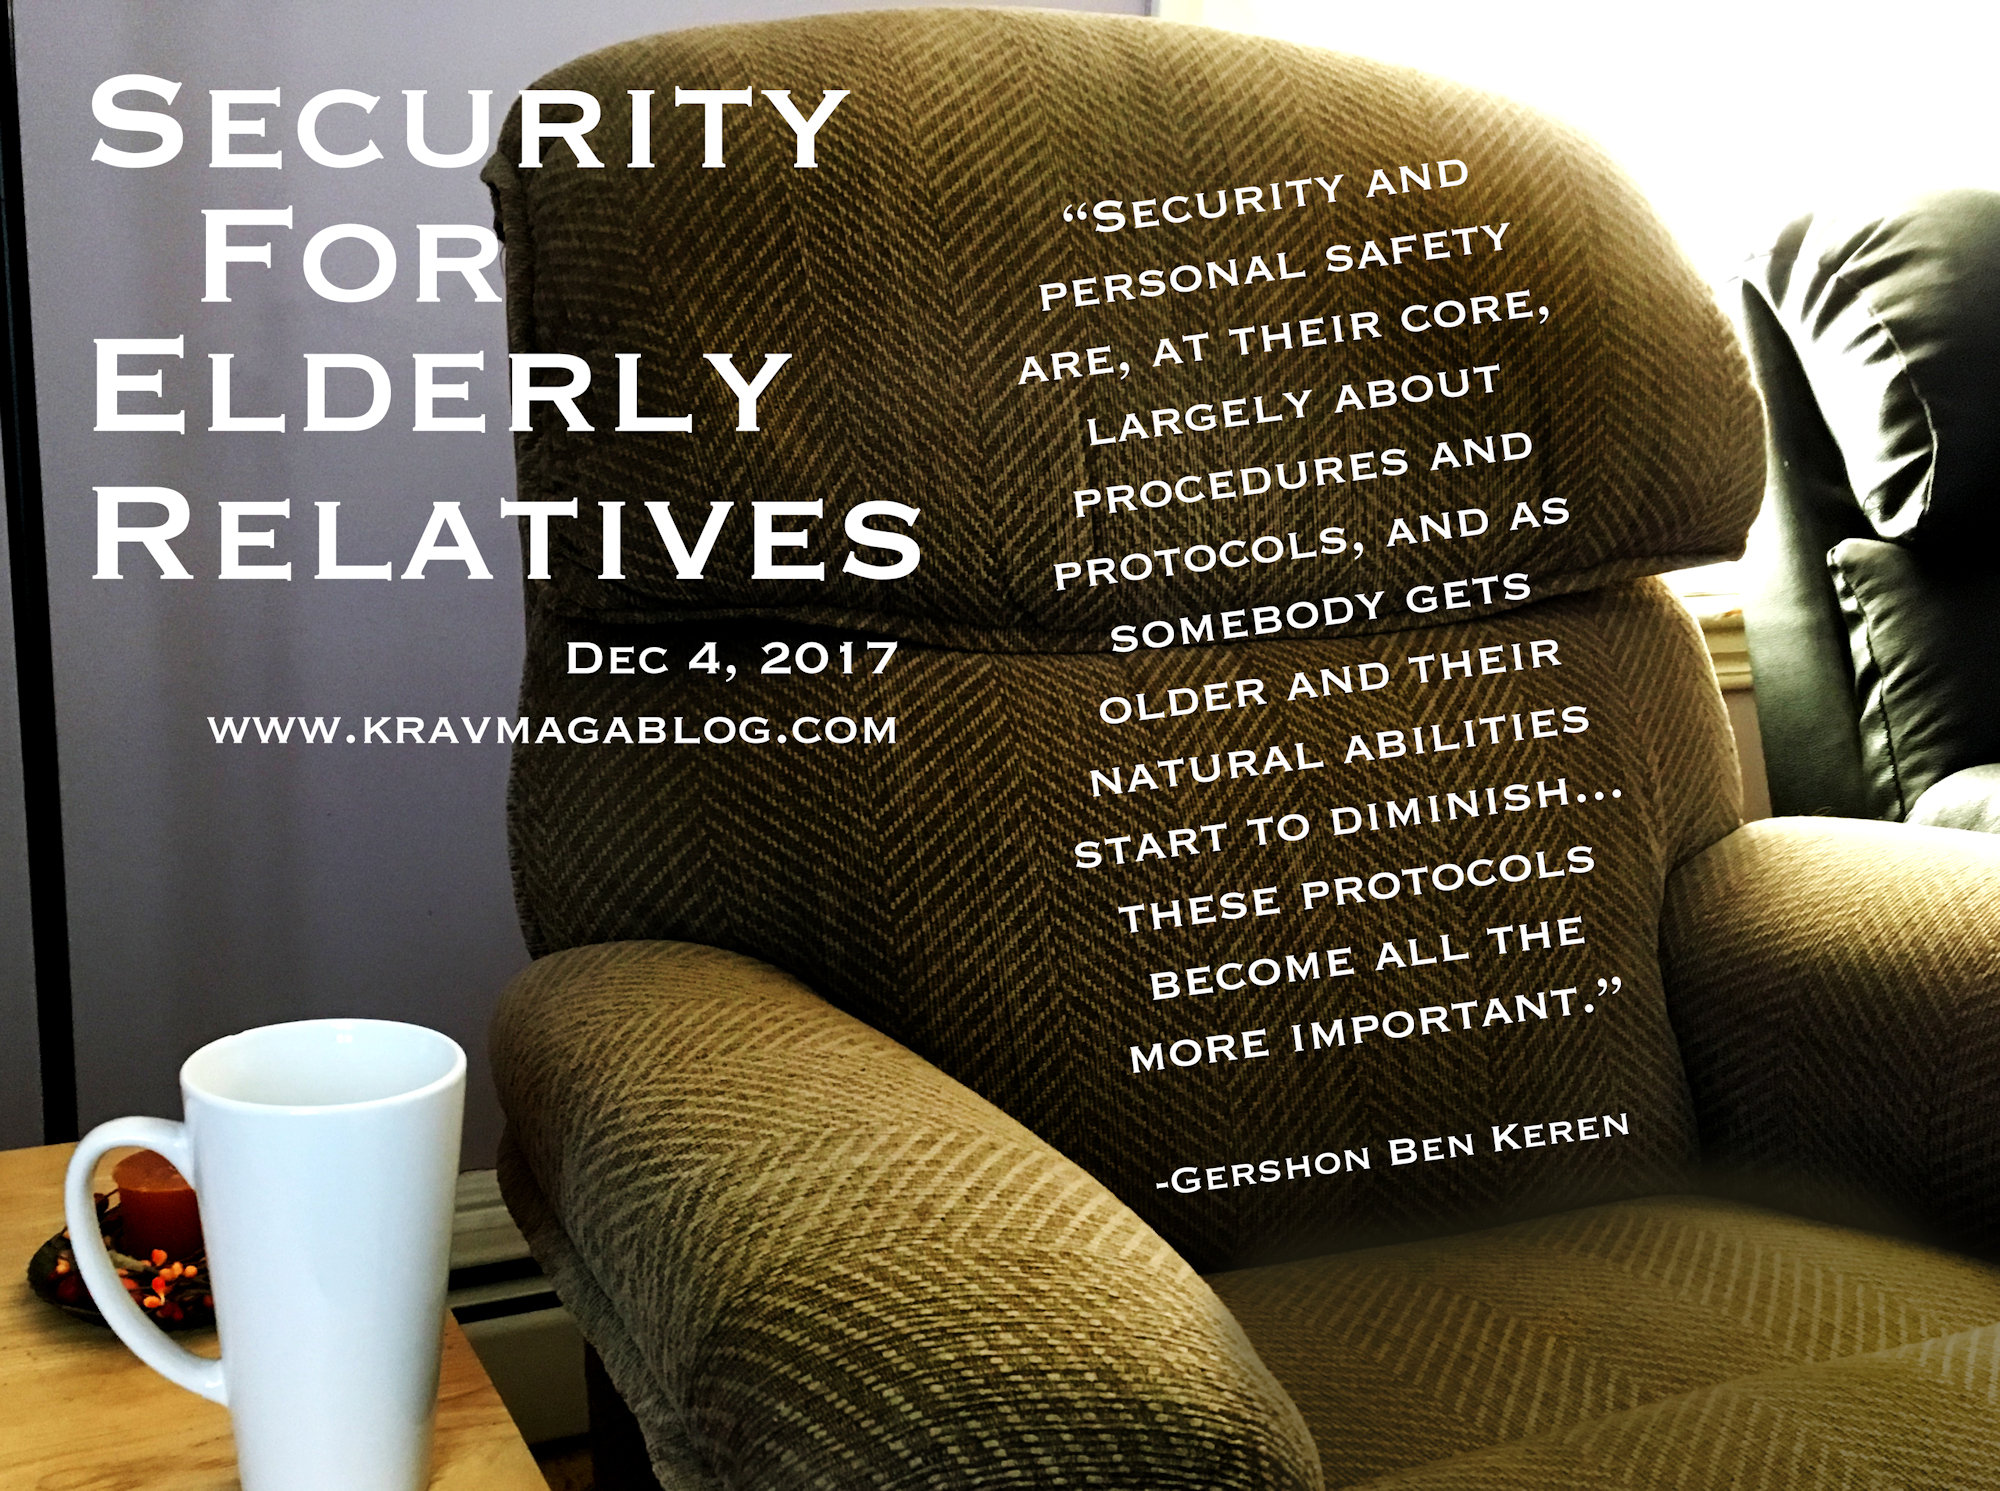 Security For Elderly Relatives